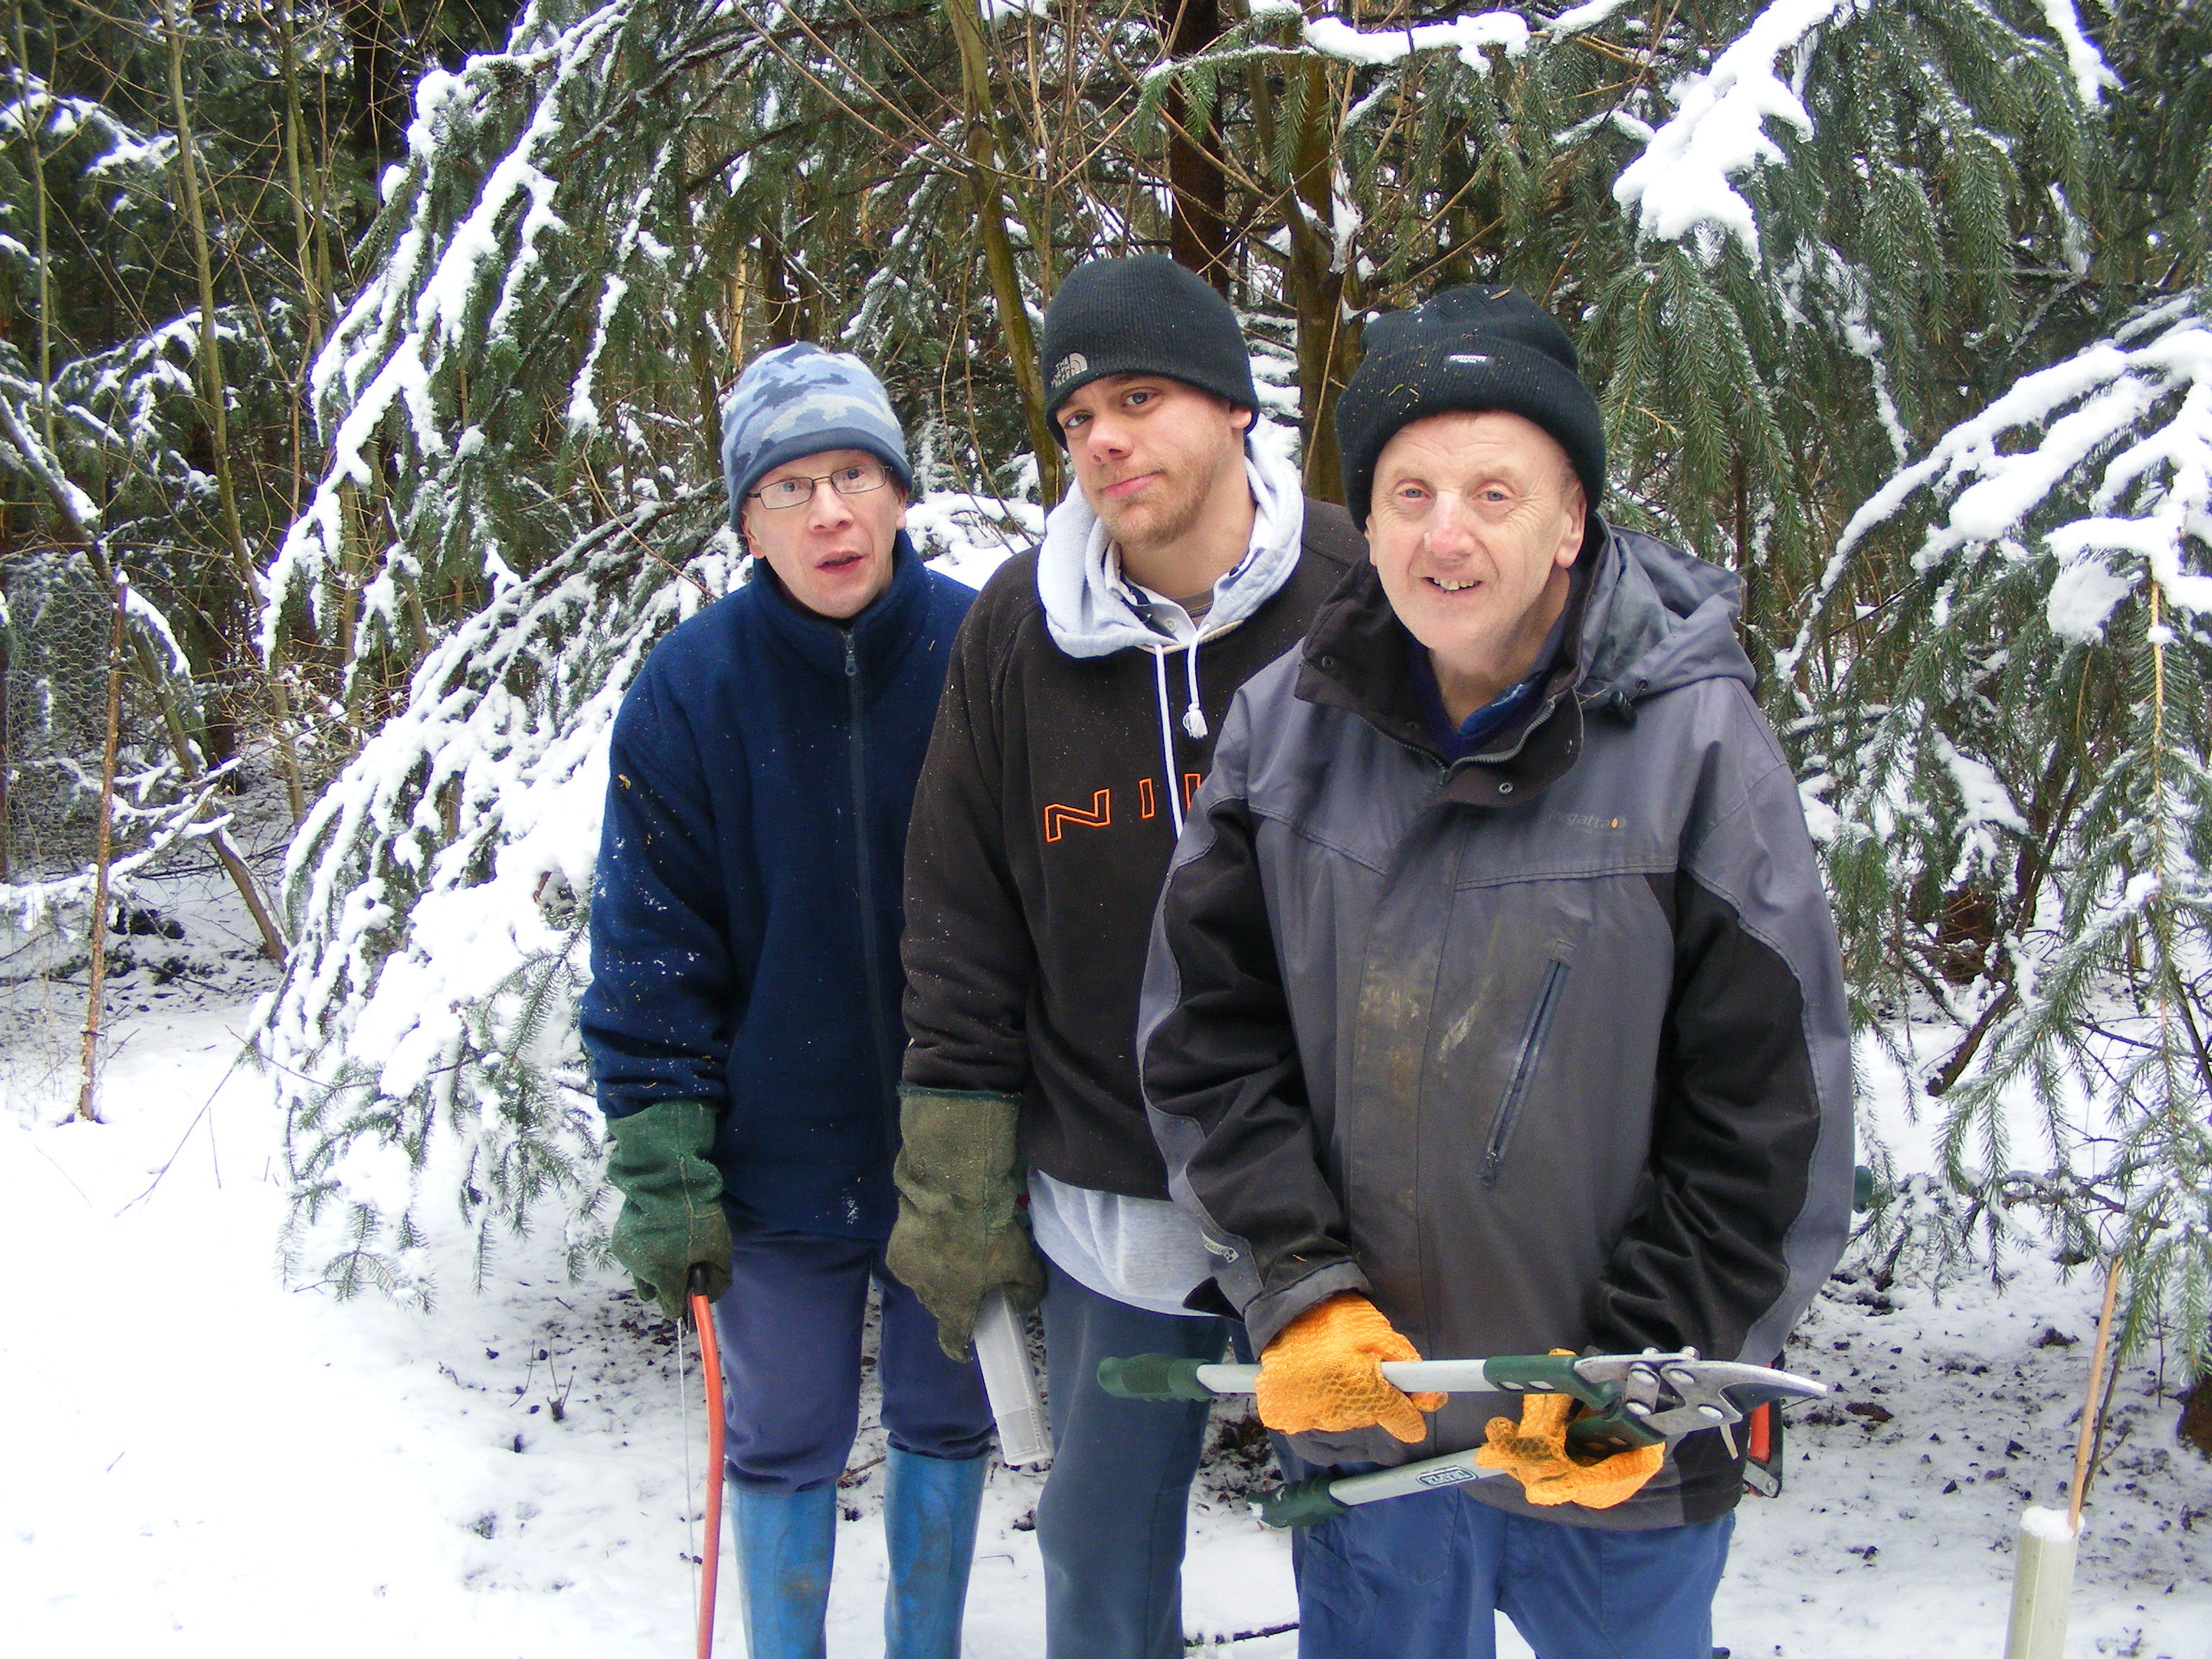 Three people holding loppers and bowsaws in a snowy woodland.